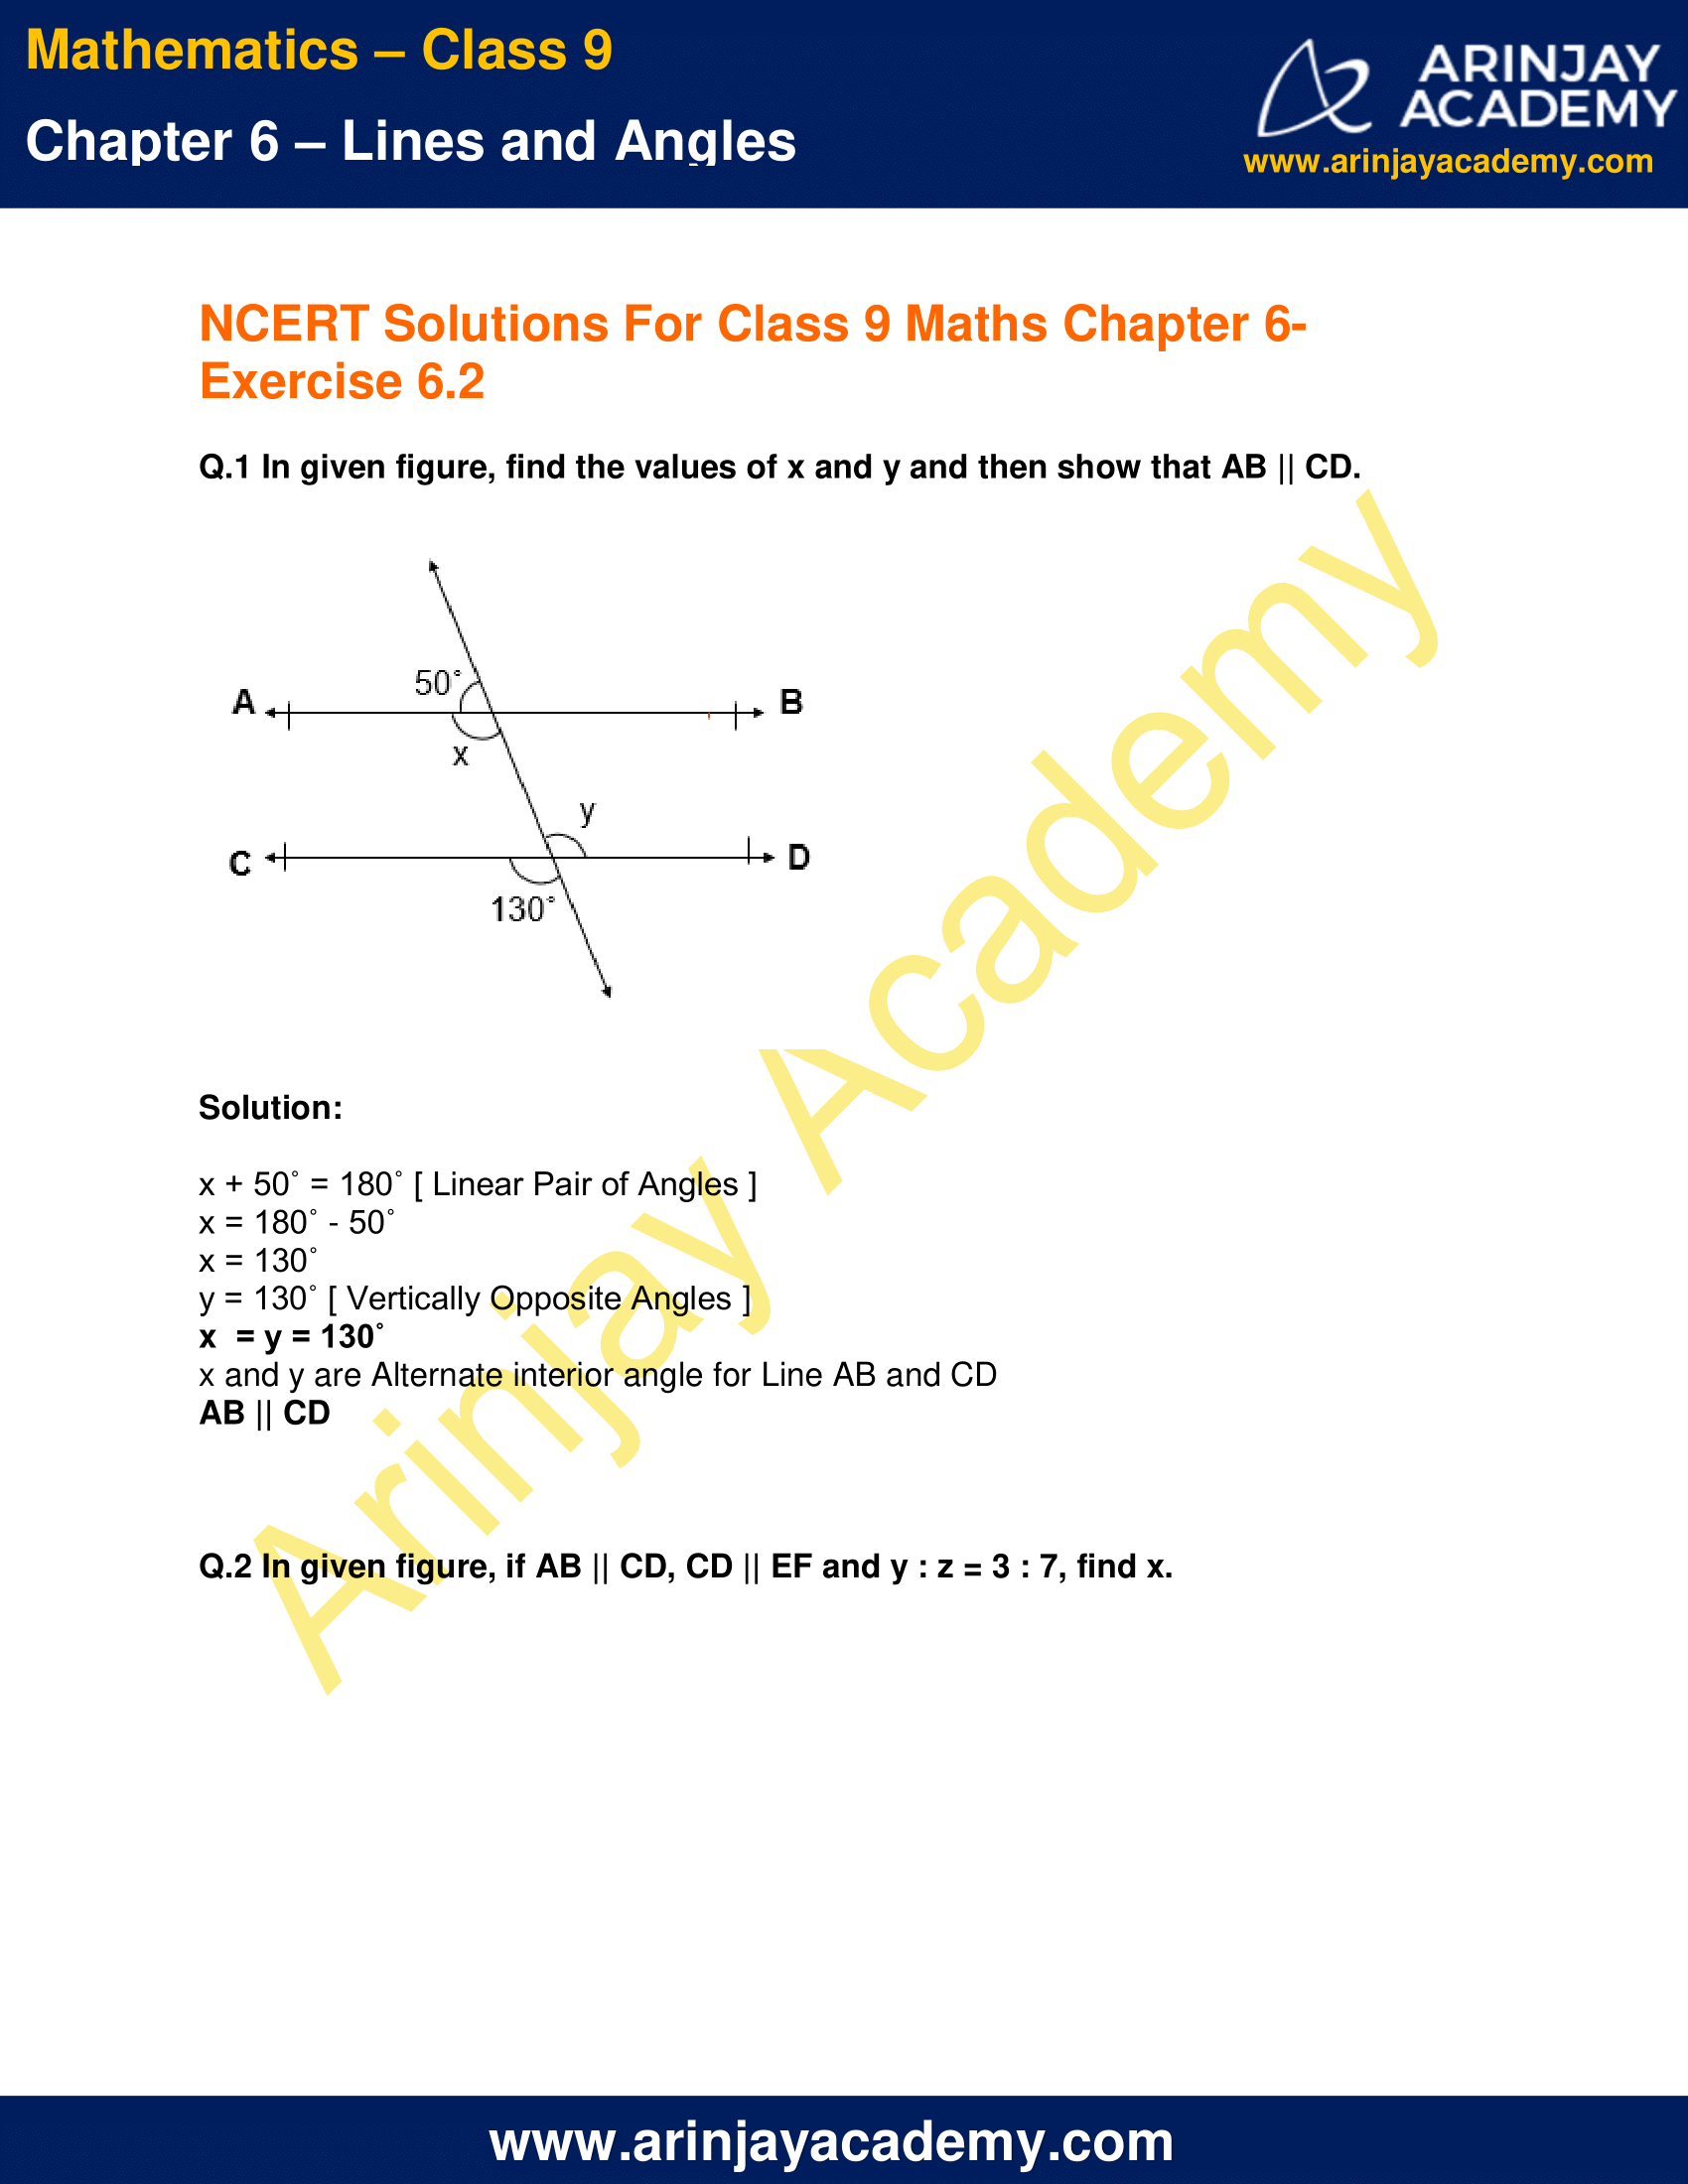 NCERT Solutions for Class 9 Maths Chapter 6 Exercise 6.2 image 1